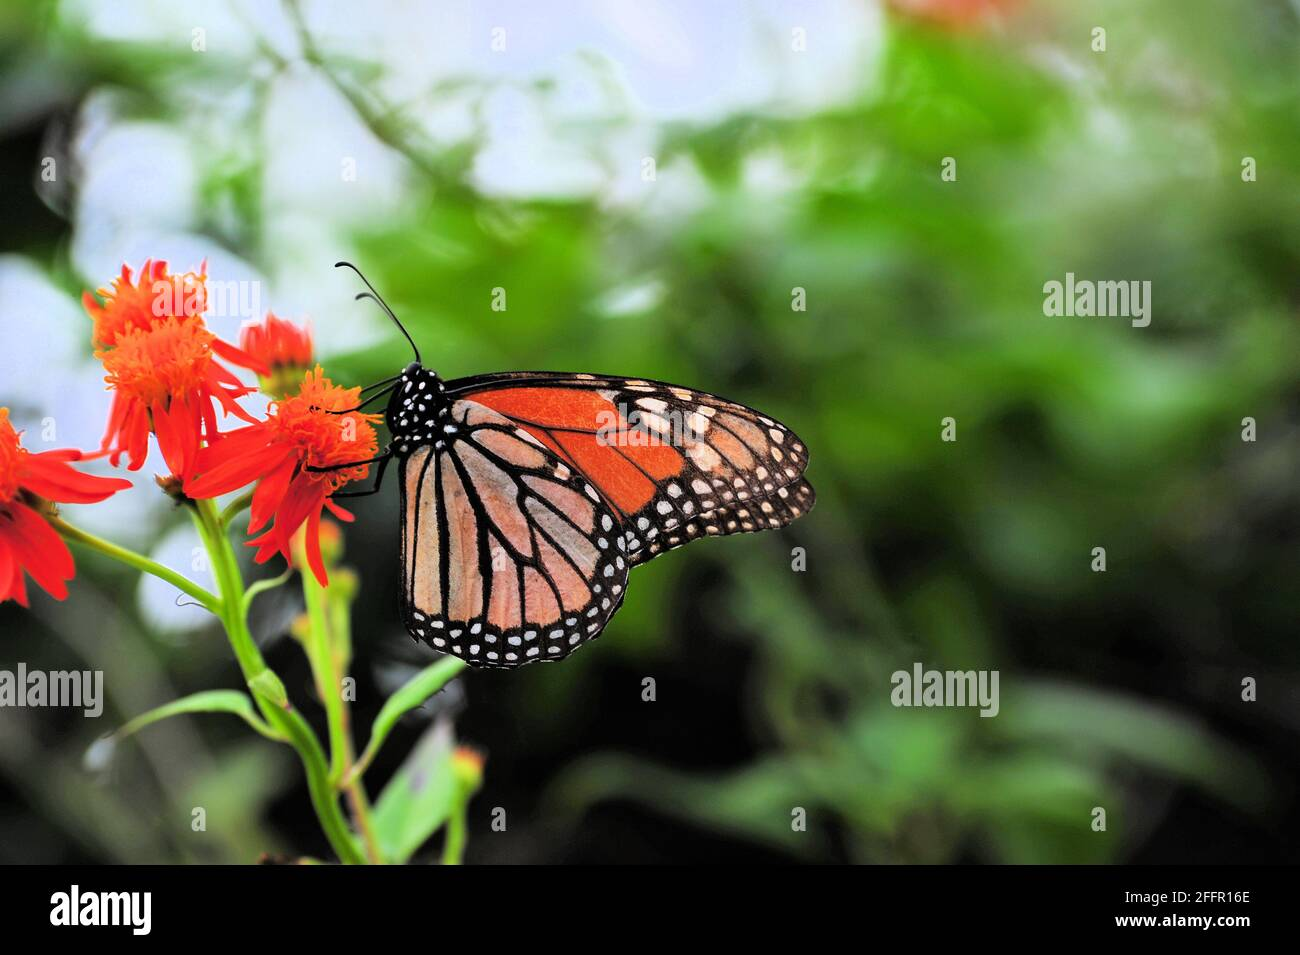 An endangered Monarch butterfly sitting on an orange flower to fuel up before it goes North. Stock Photo